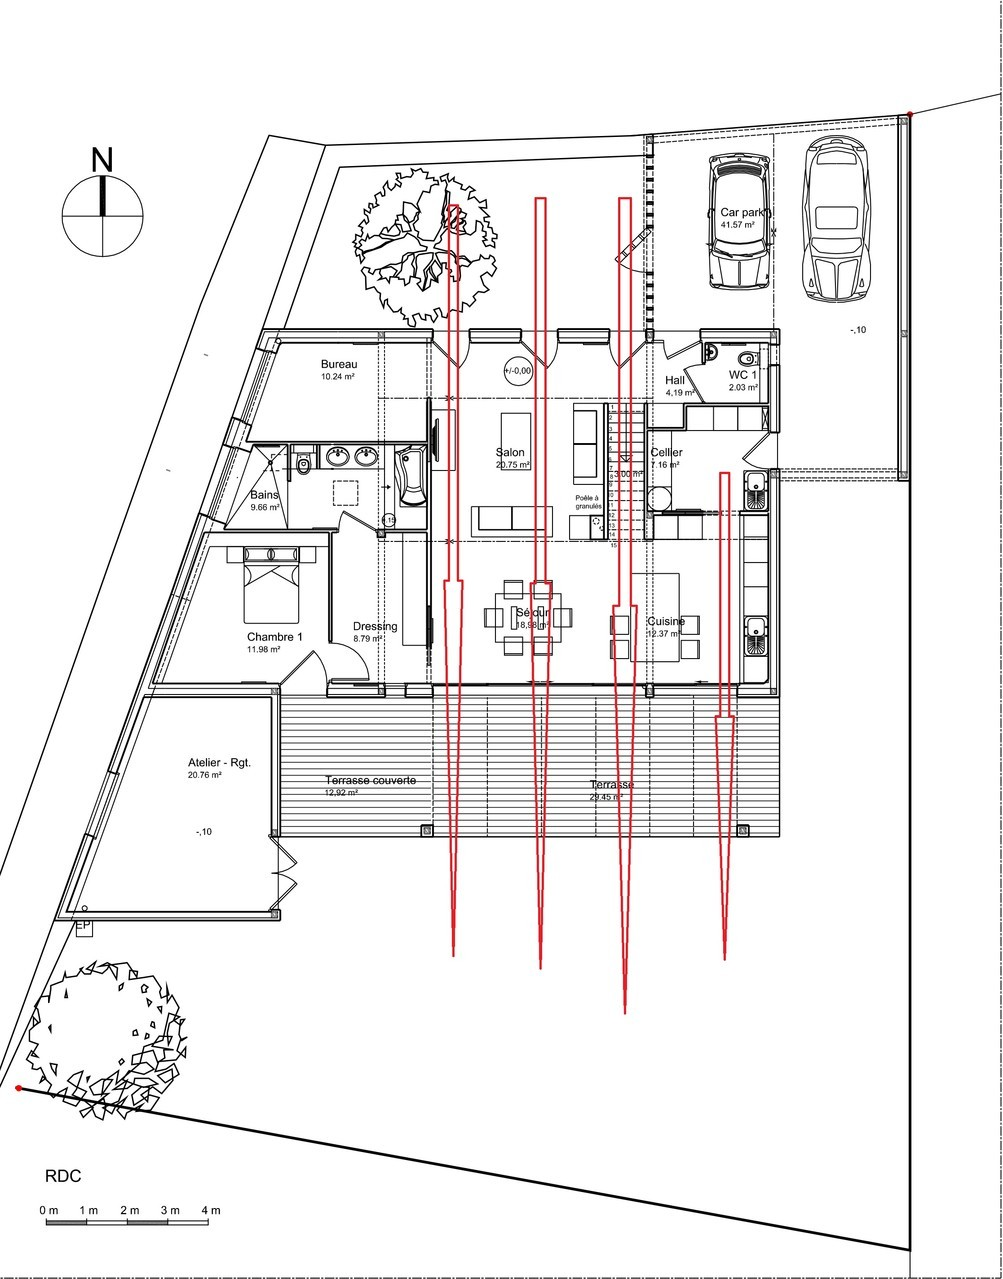 Pin dessiner des plans de maison plan on pinterest - Dessiner plan de maison ...